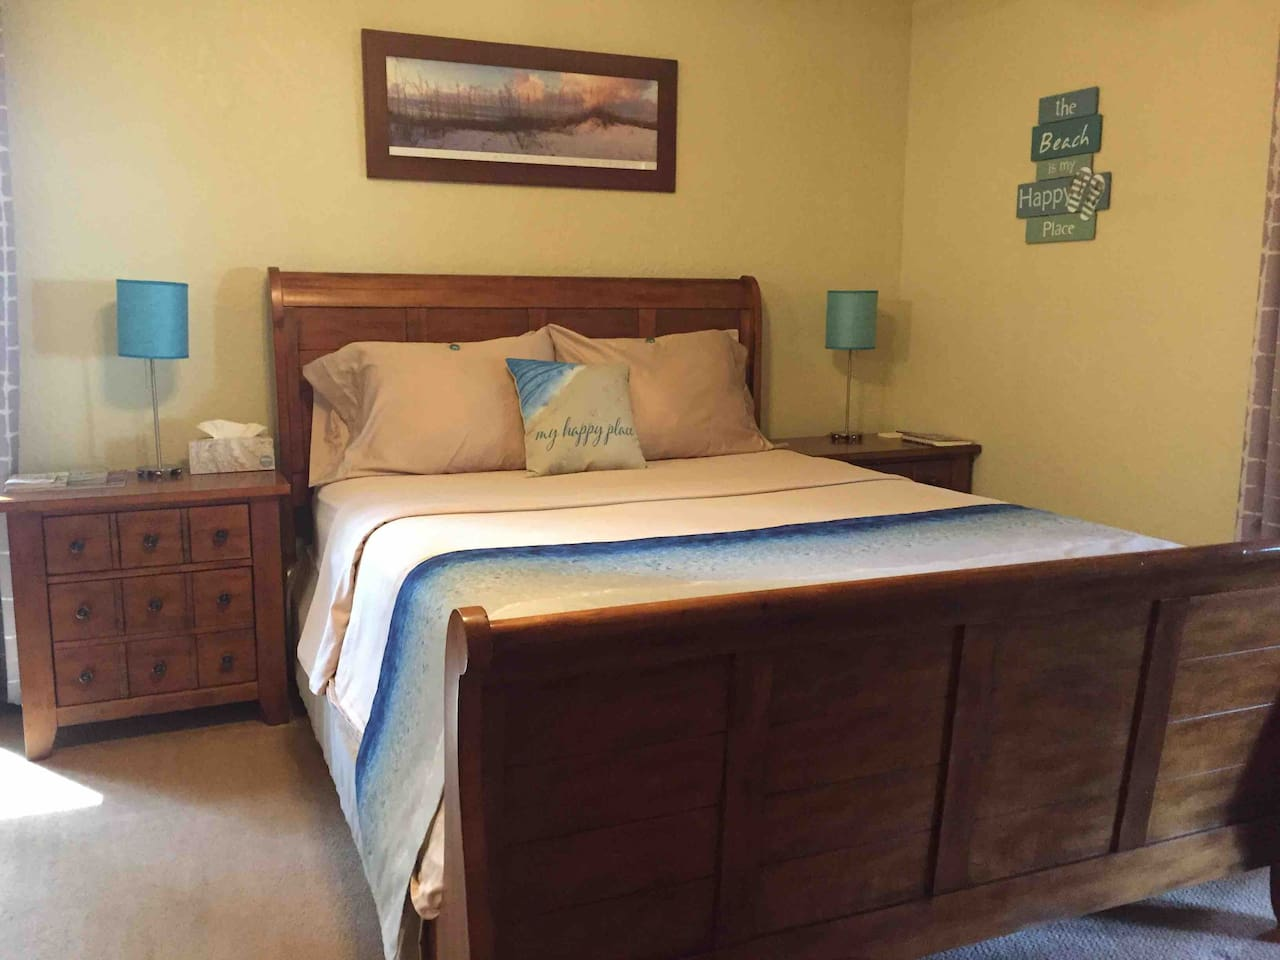 Get a great night sleep in our peaceful, quiet home on a very comfortable queen sleigh bed!